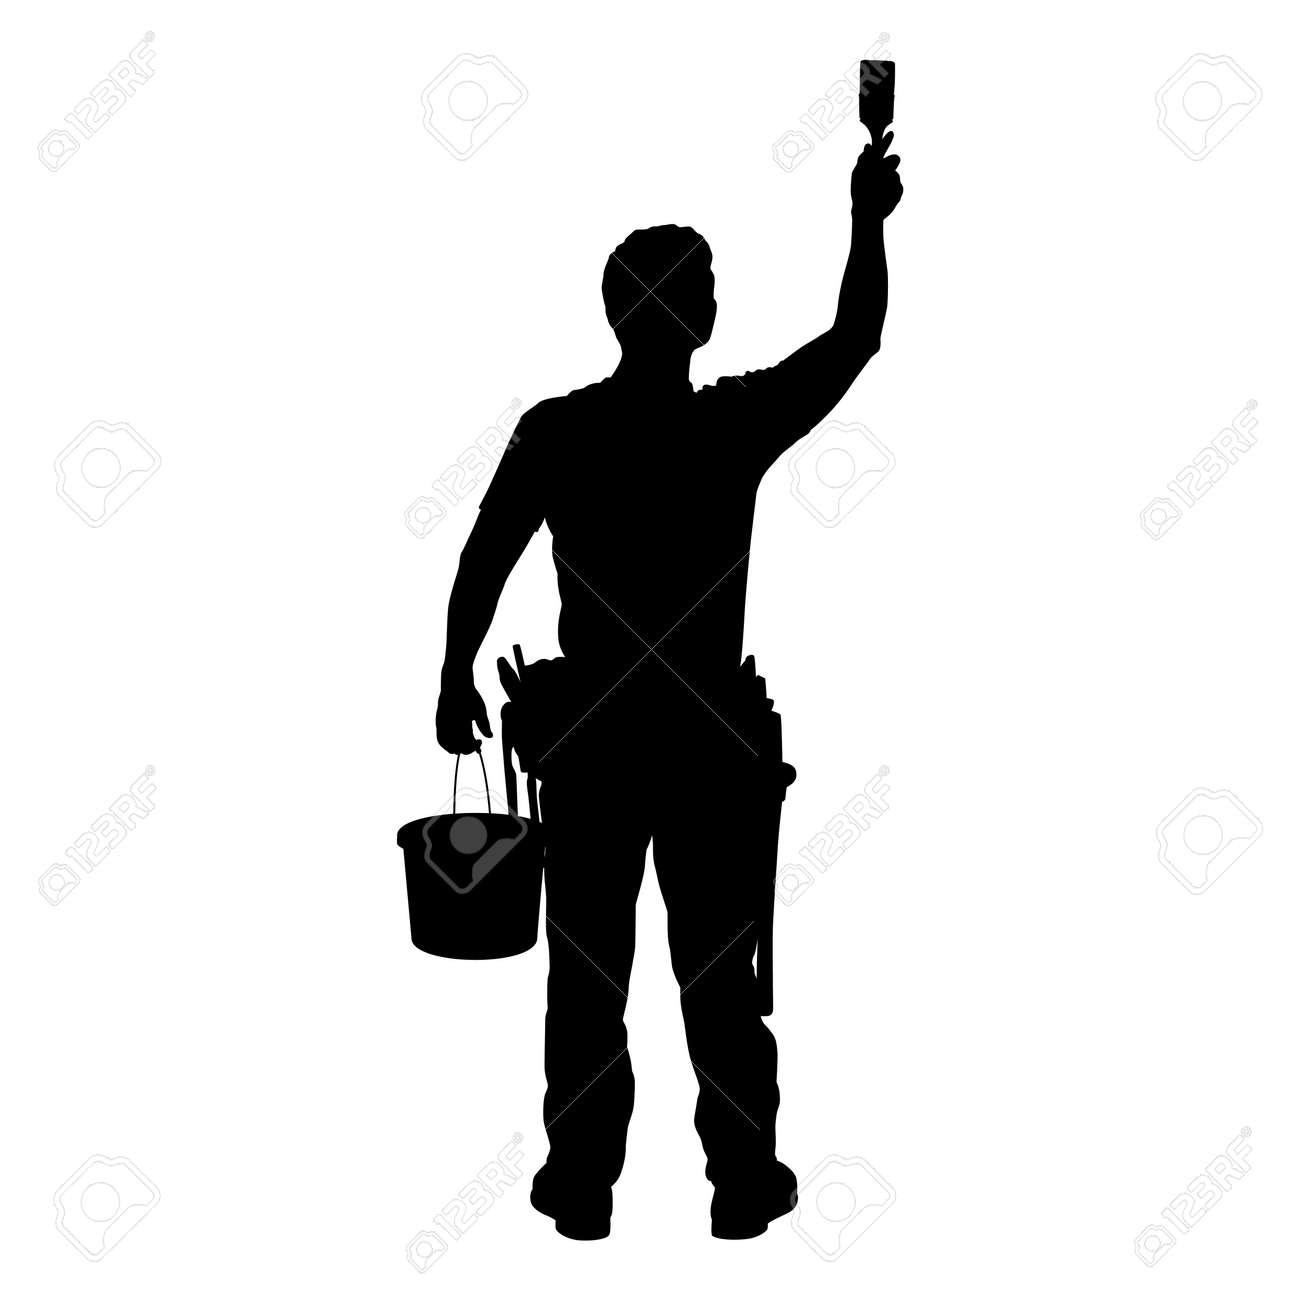 MAN AT WORK - SILHOUETTE - Dark image outlined against a white background Stock Photo - 792268